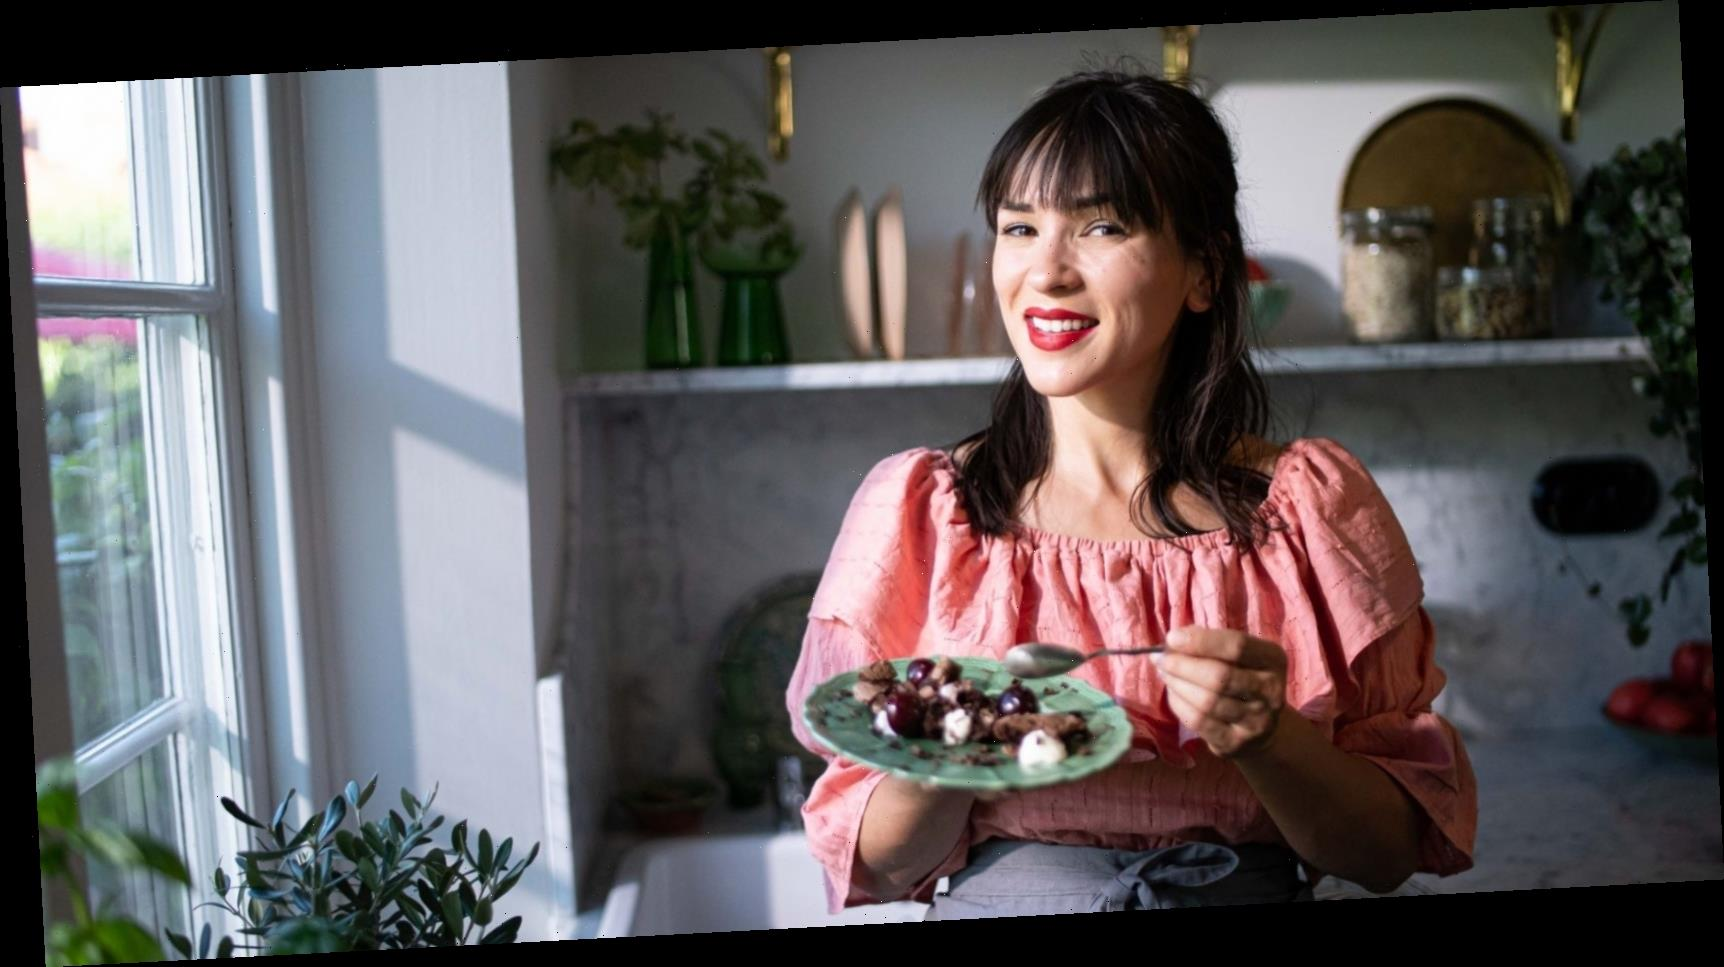 Rachel Khoo's delicious new cooking show puts chocolate in a completely new light